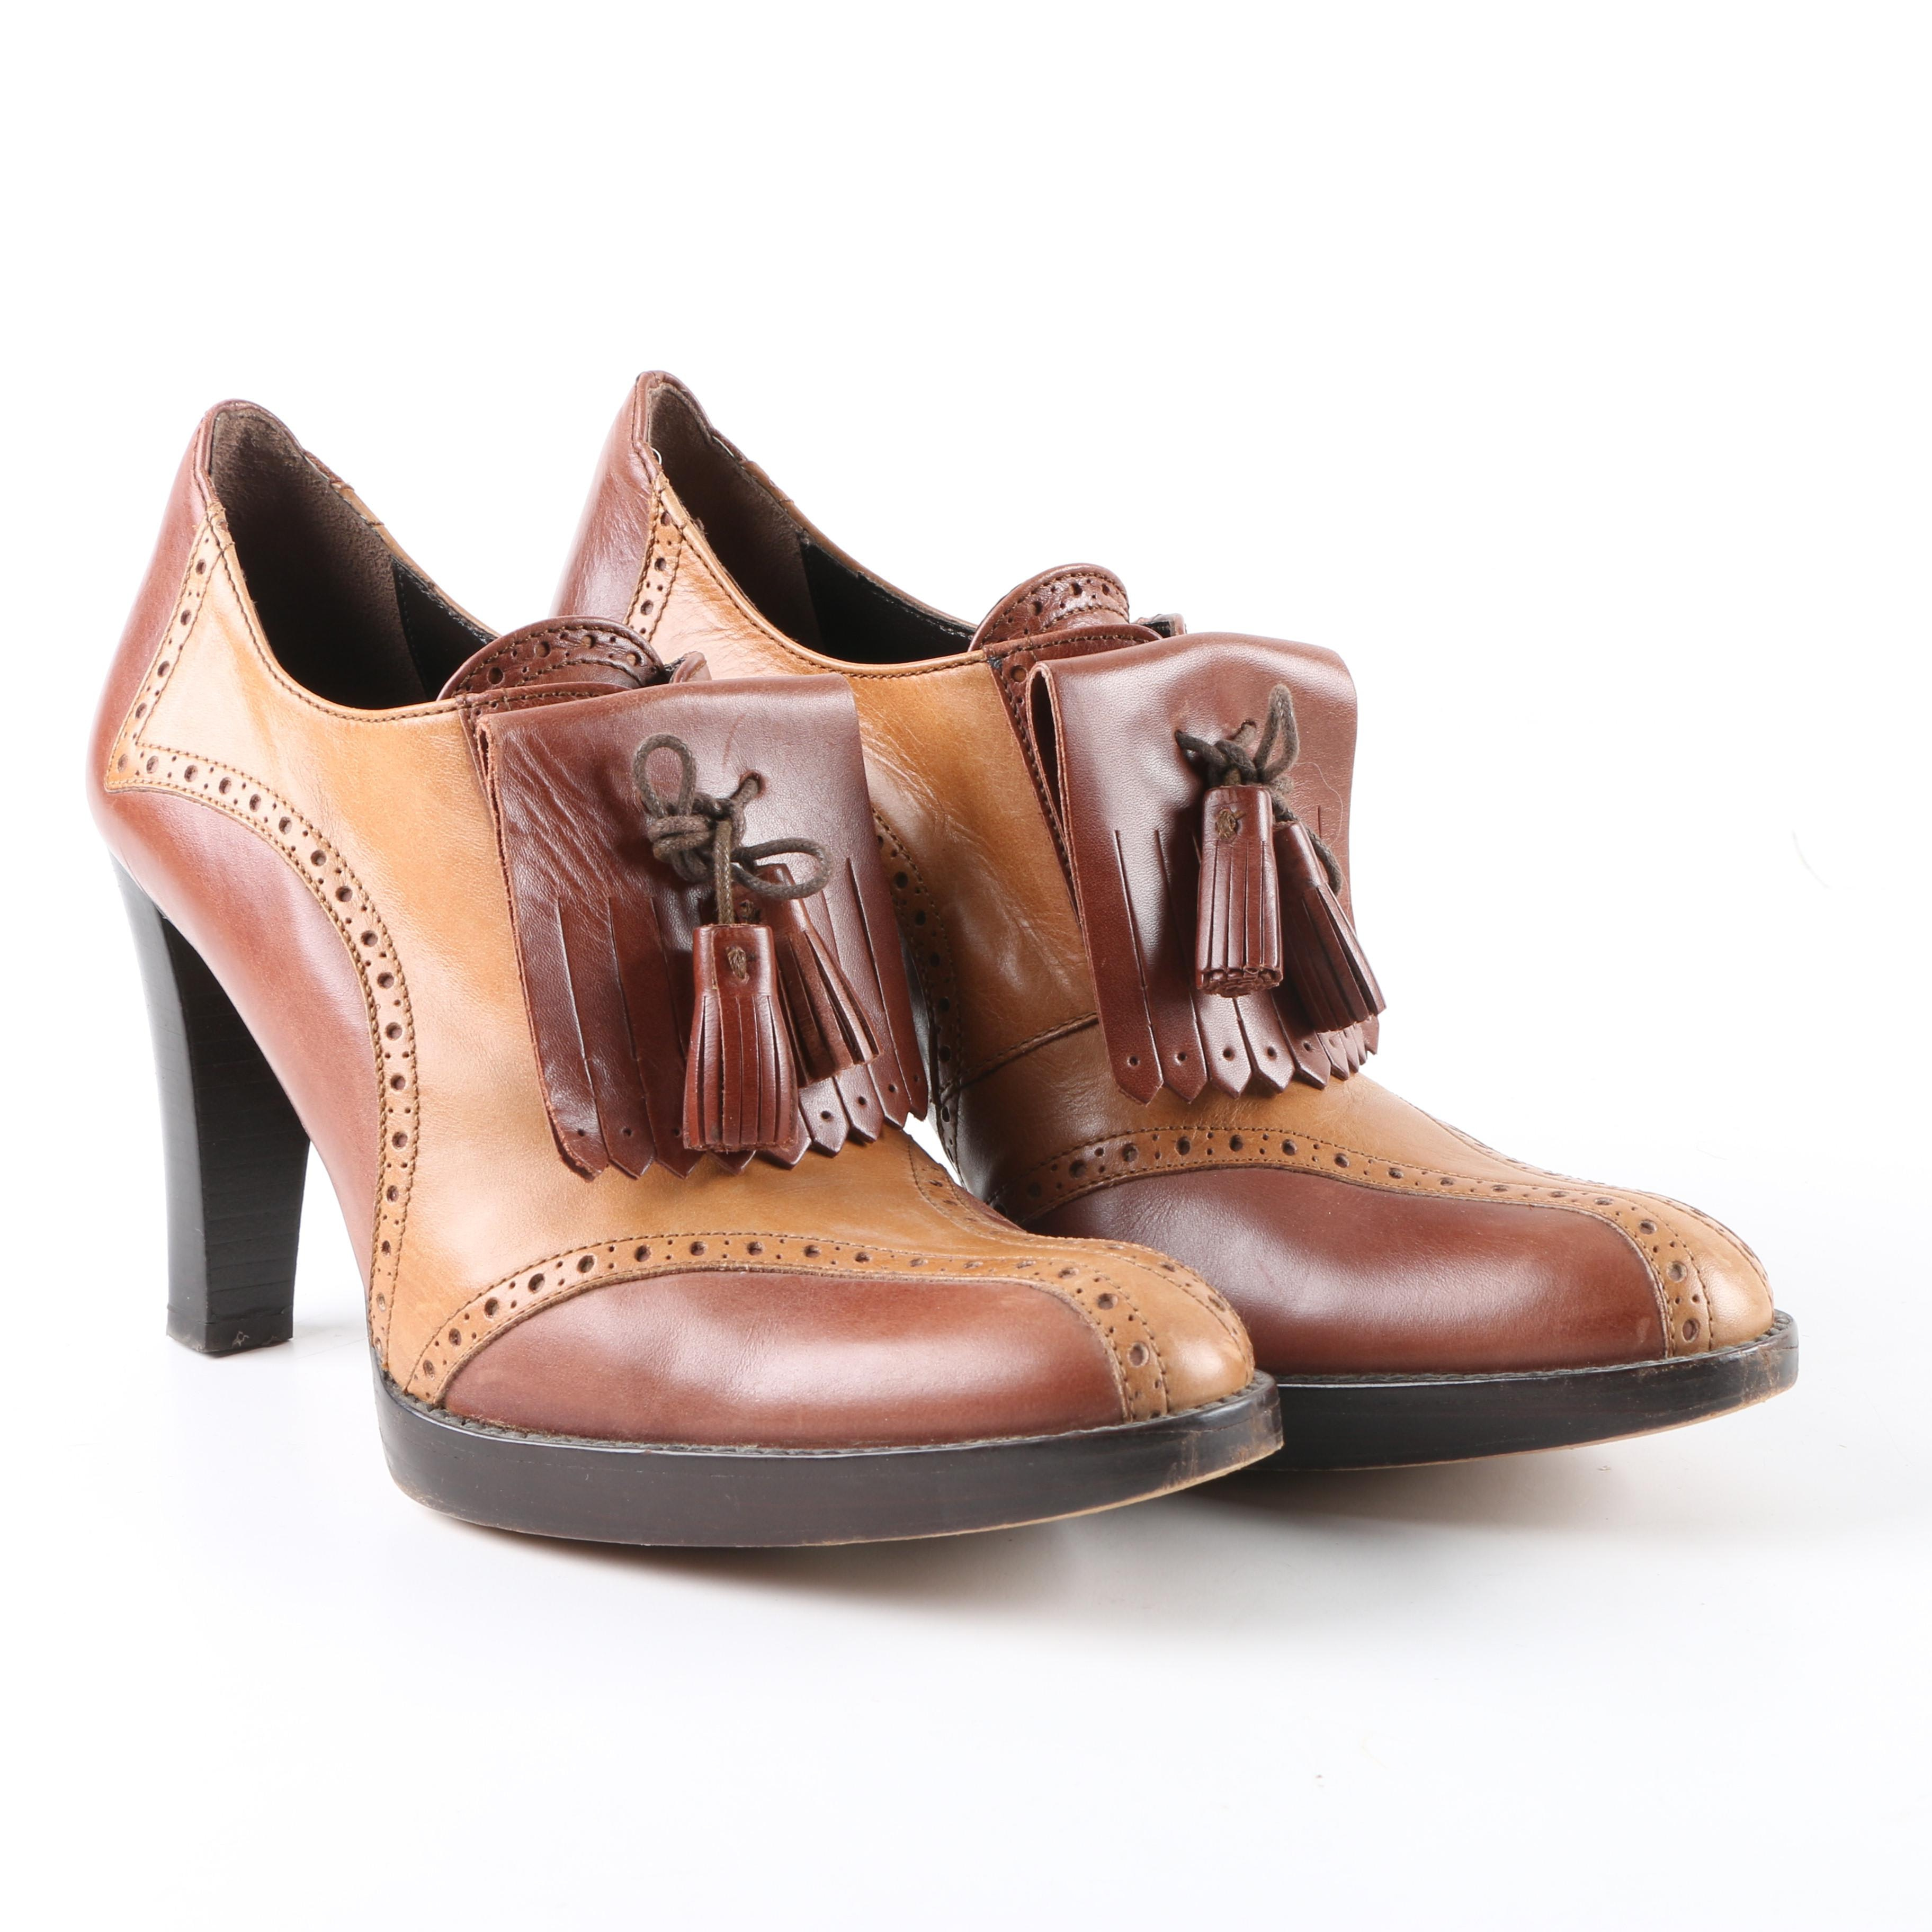 Women's Max Mara Brown and Tan Leather High-Heeled Tassel Loafers